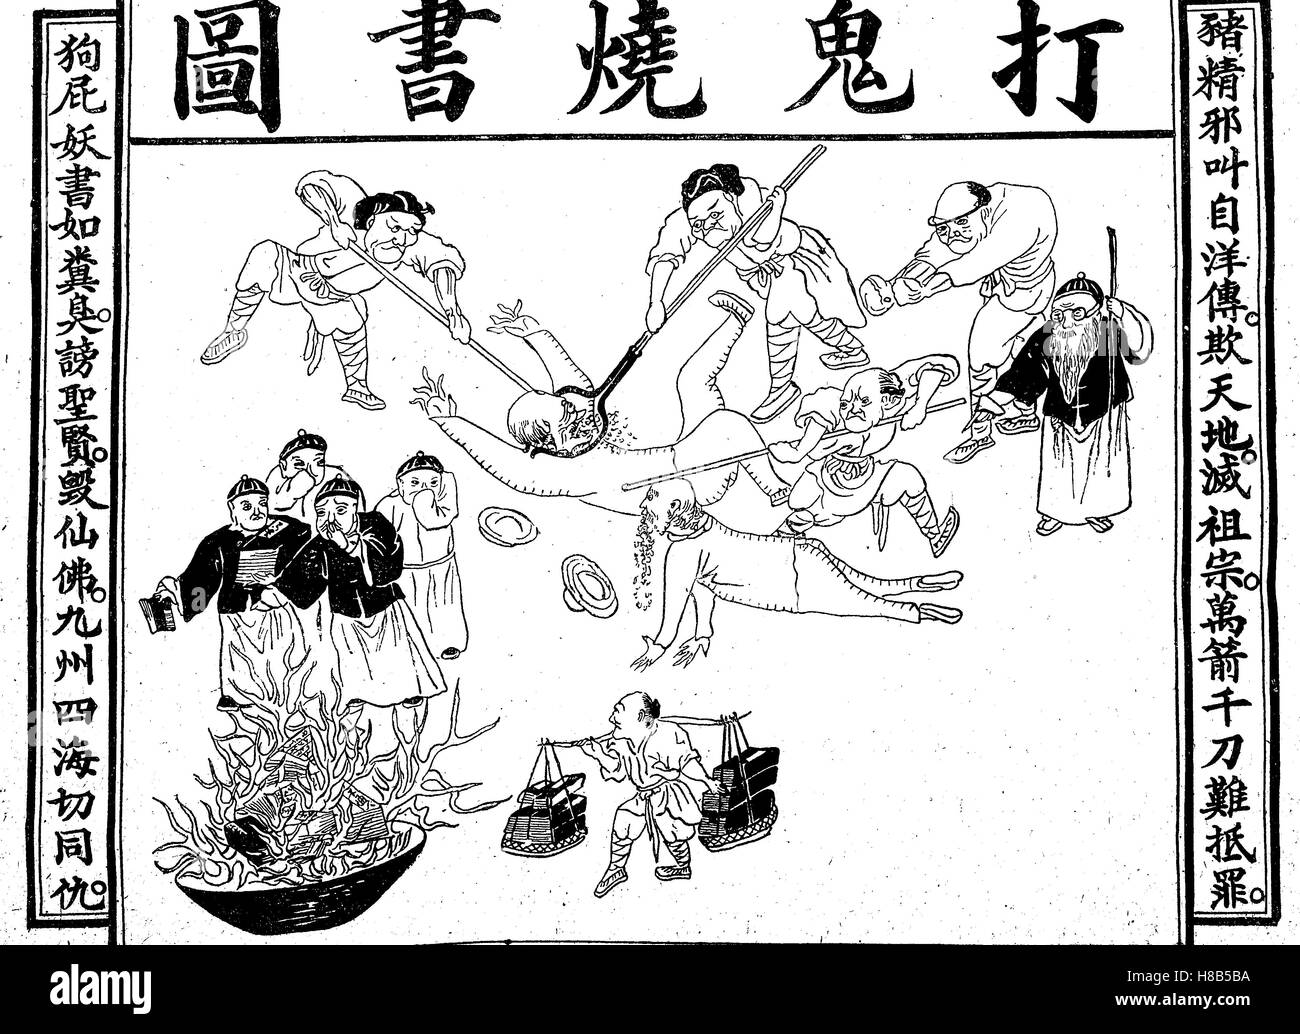 sheet, directed against the Europeans, poster, published in Shanghai, China, Woodcut from 1892 - Stock Image